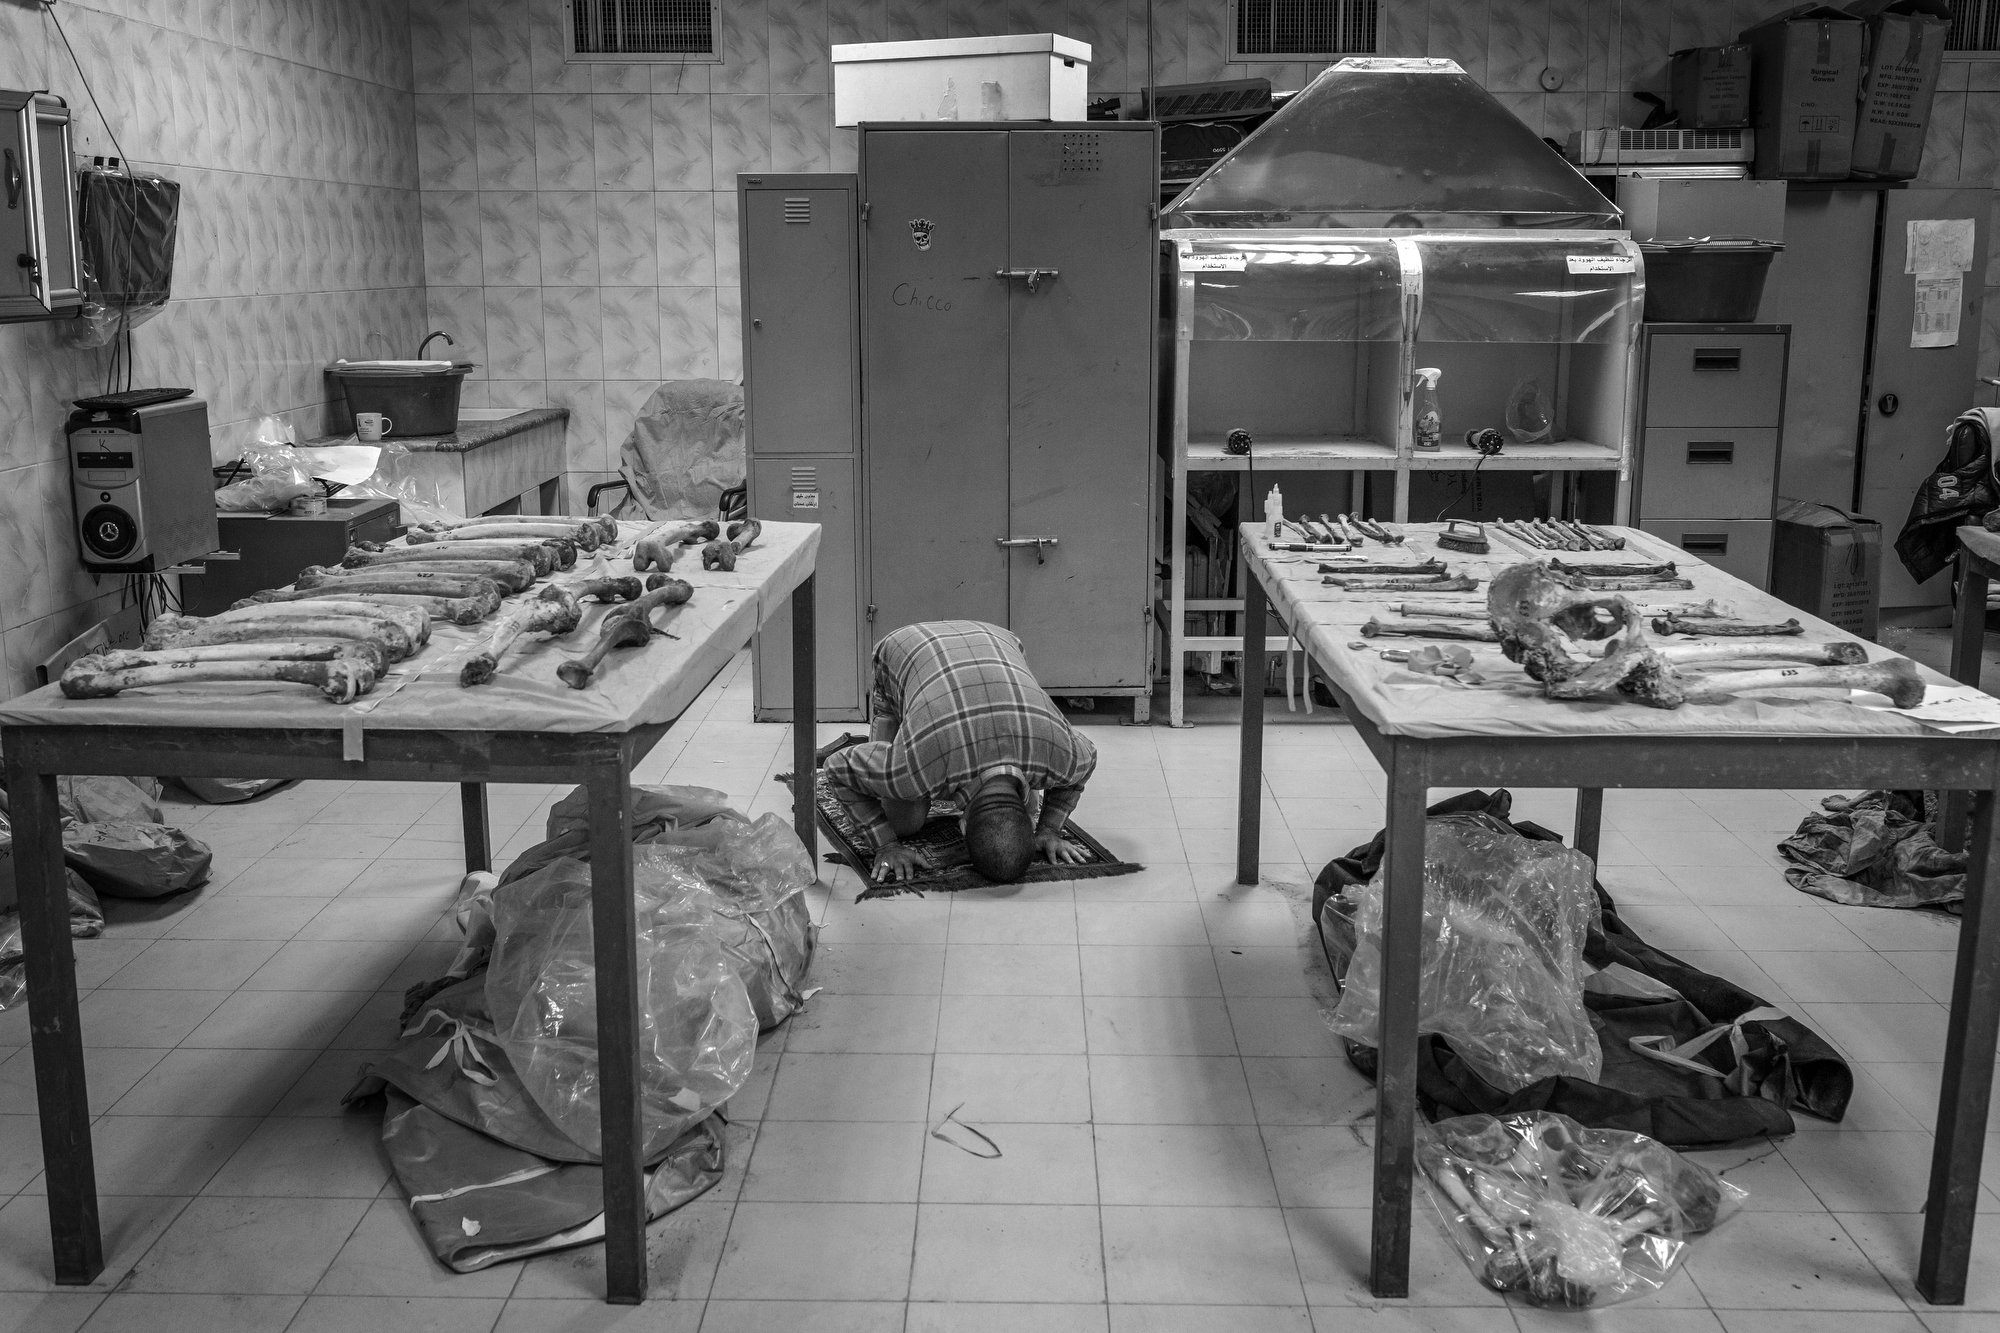 A worker prays at the Baghdad mortuary in a room full of human remains recovered from mass graves.